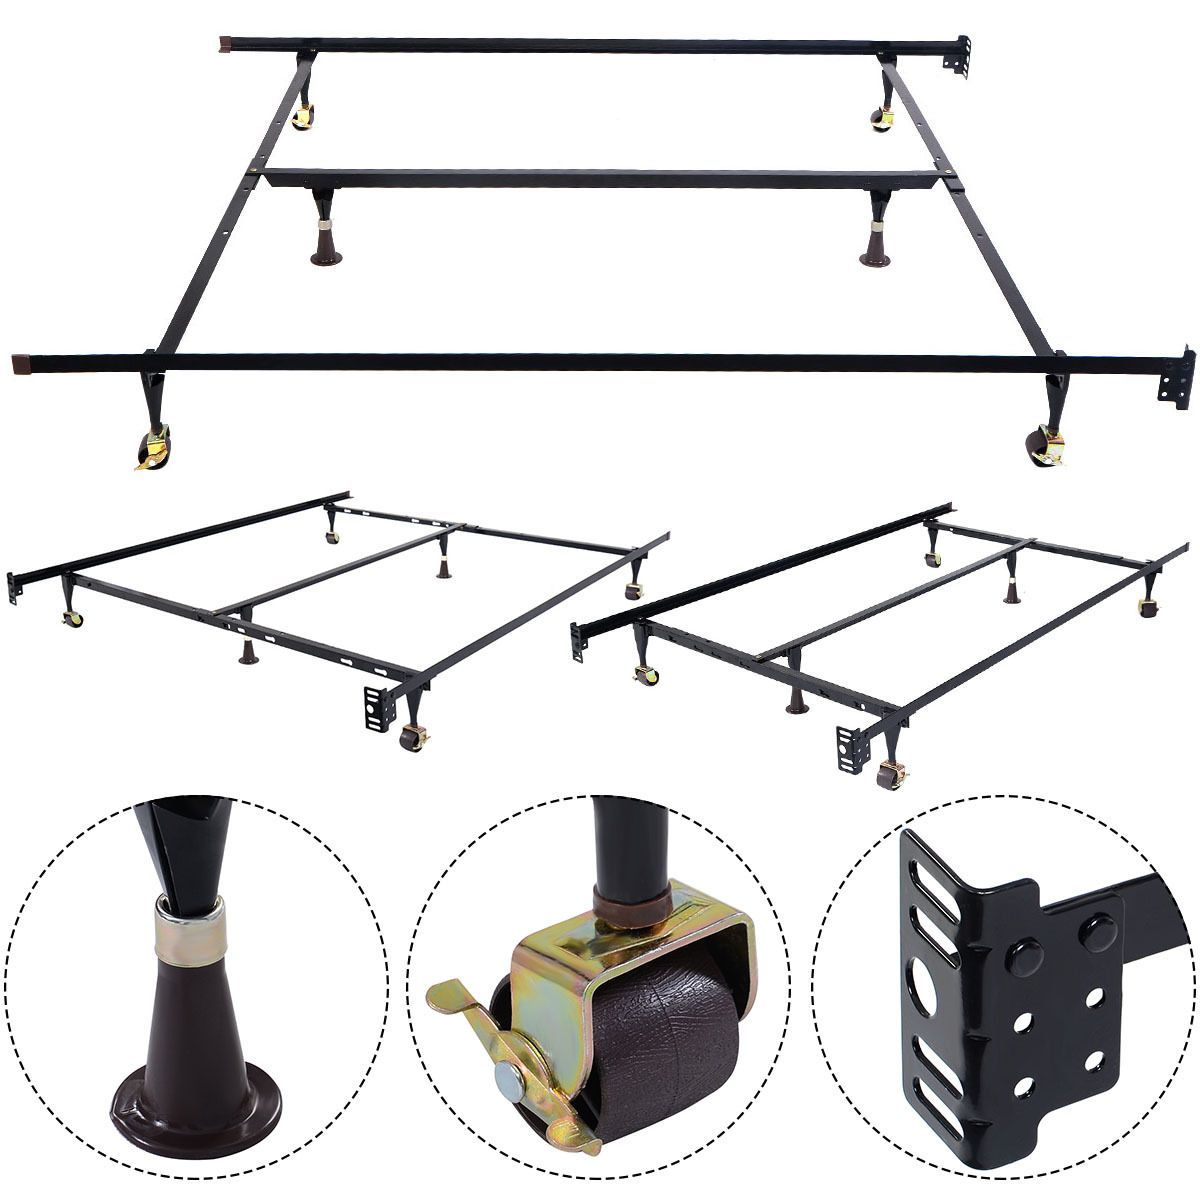 Size Adjustable Steel Bed Frame with Casters Metal bed